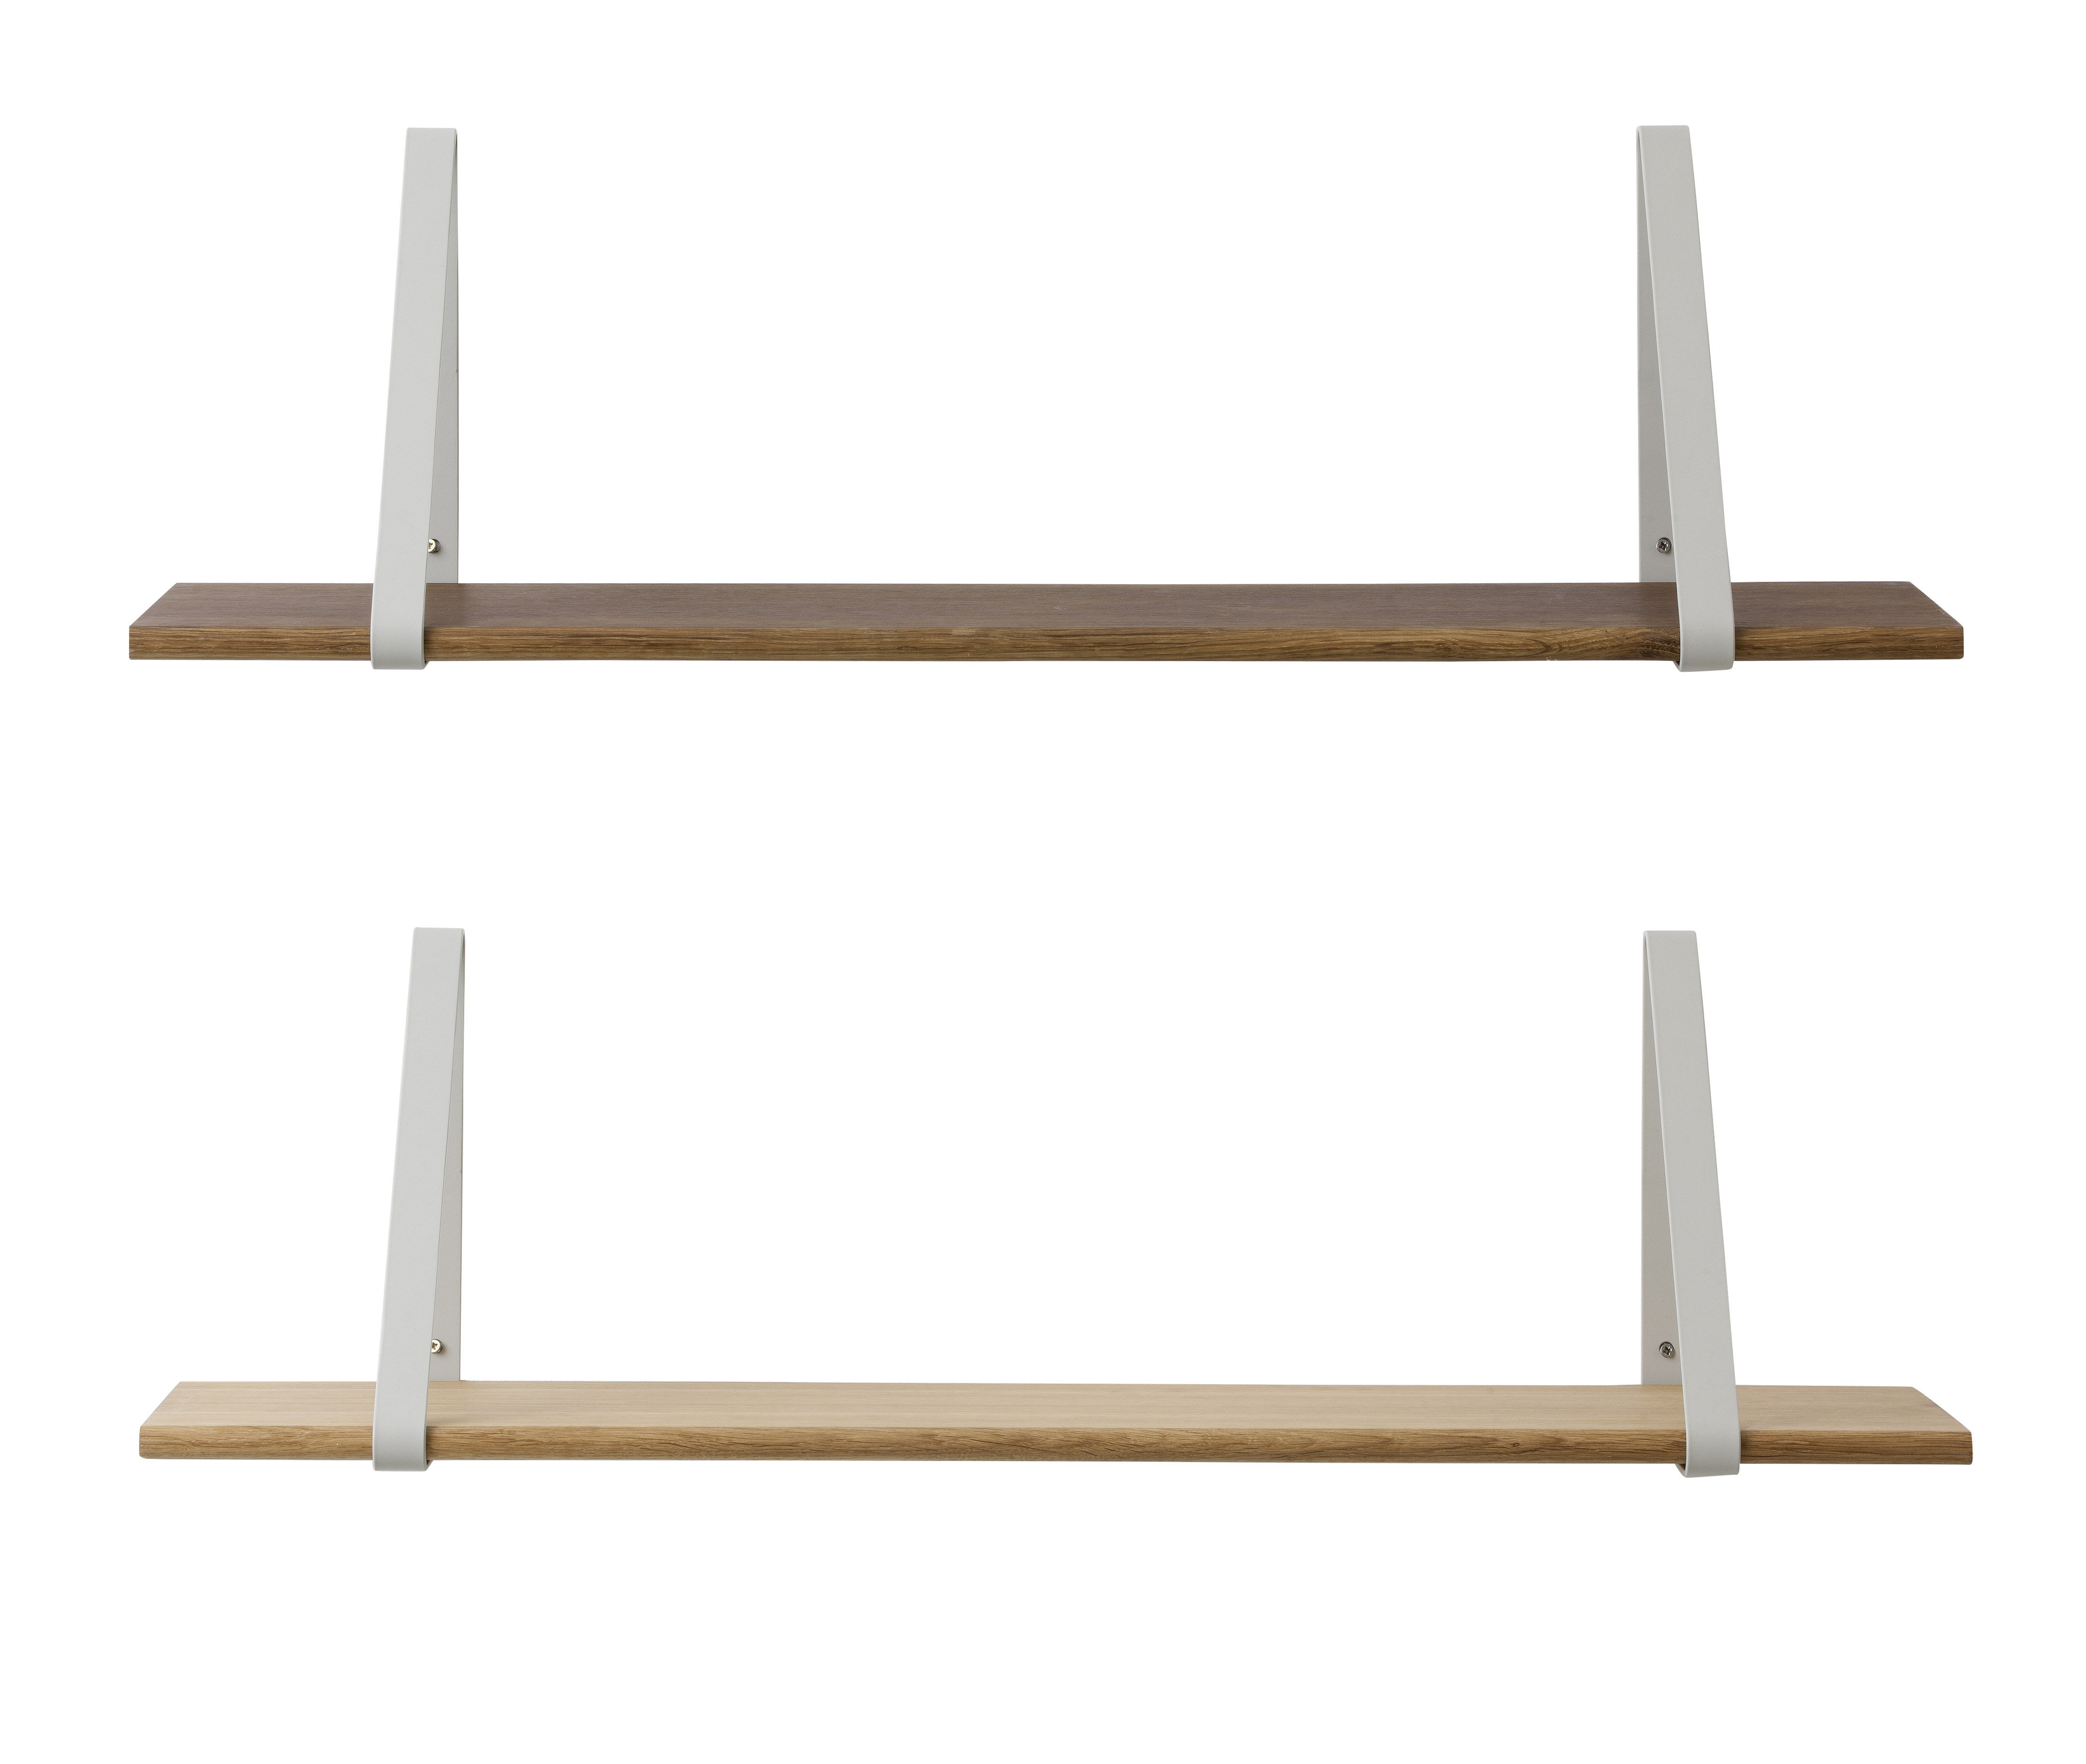 Superieur Set Of 2 Shelf Brackets   For The Shelf Grey By Ferm Living | Made In  Design UK